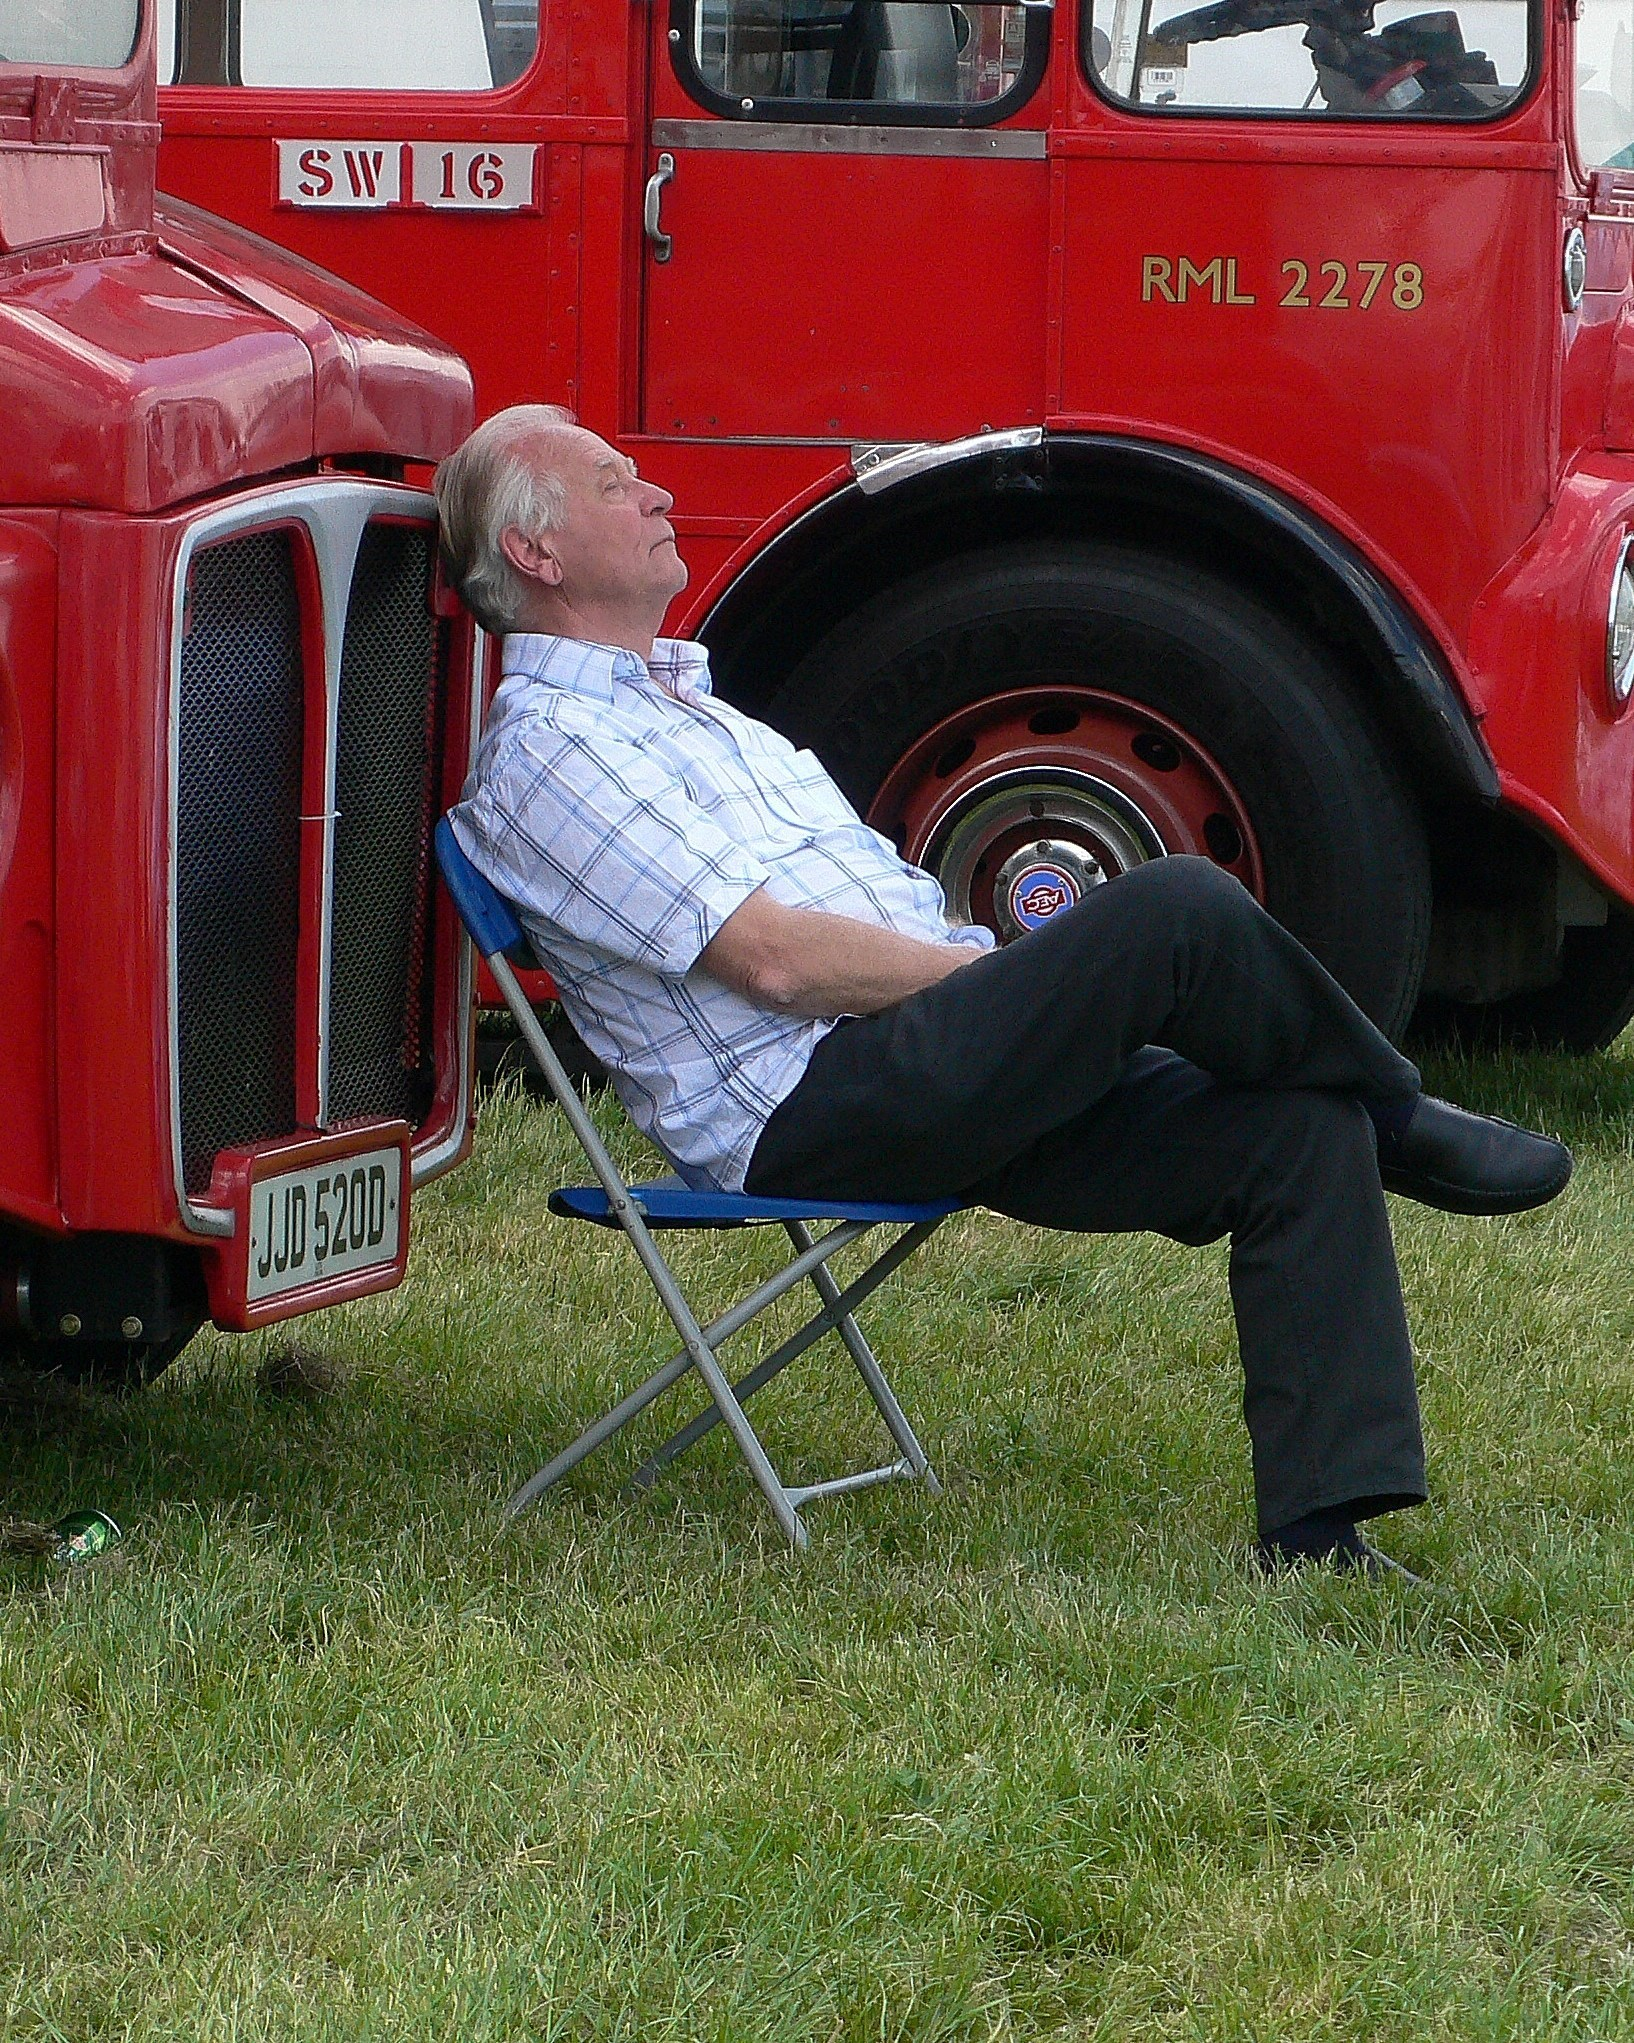 A well earned nap after the running of the 2007 Derby.